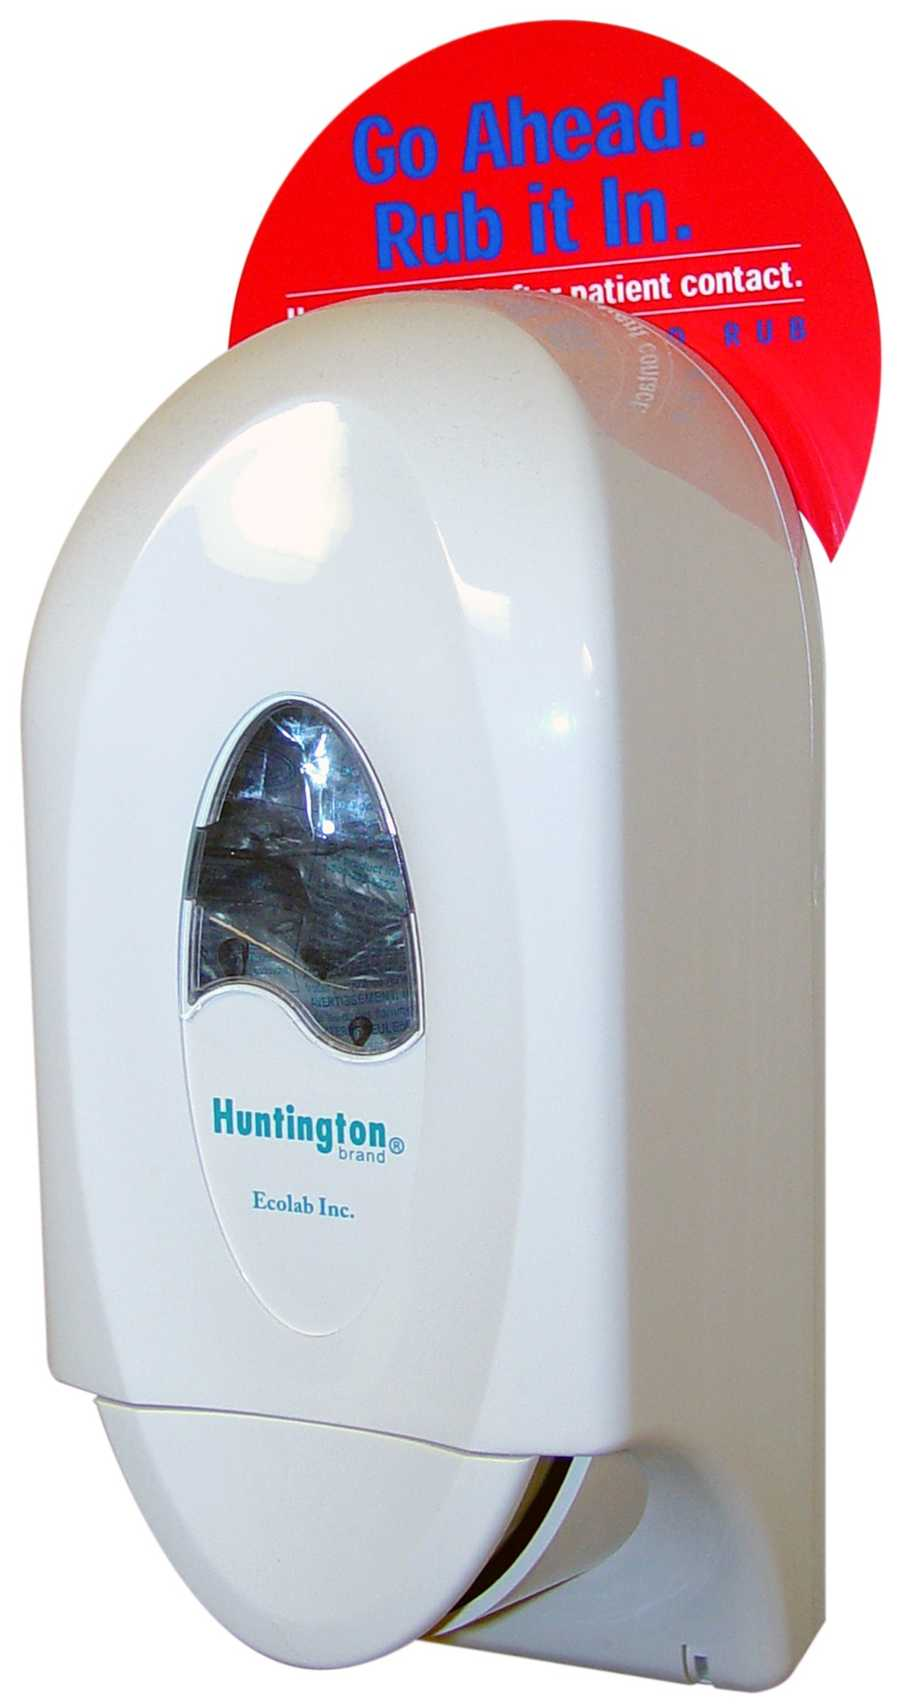 Anti-bacterial hand sanitizers are no more effective at deactivating viruses than any other kind of soap or detergent.